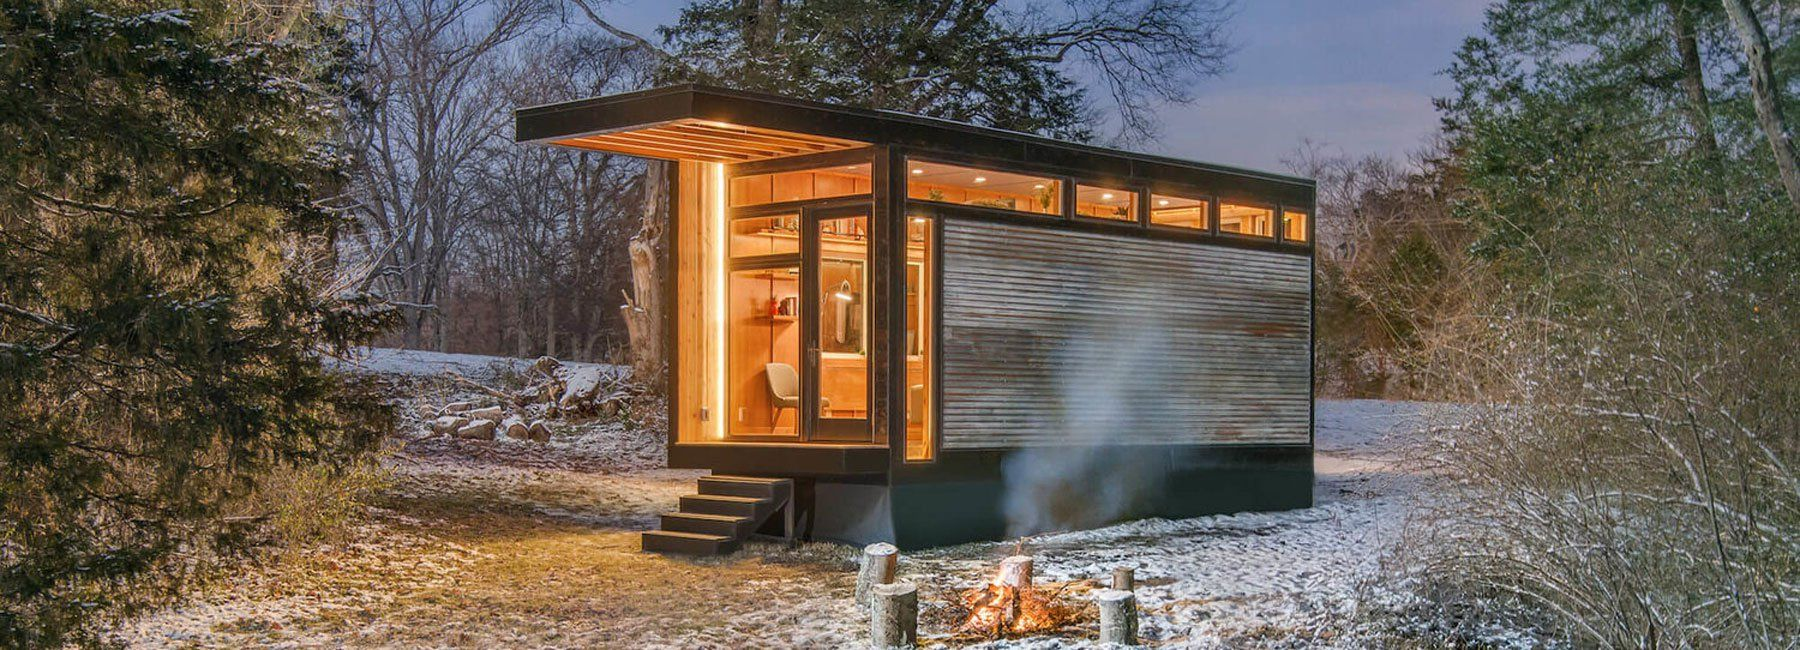 a tiny prefab cabin for cases of